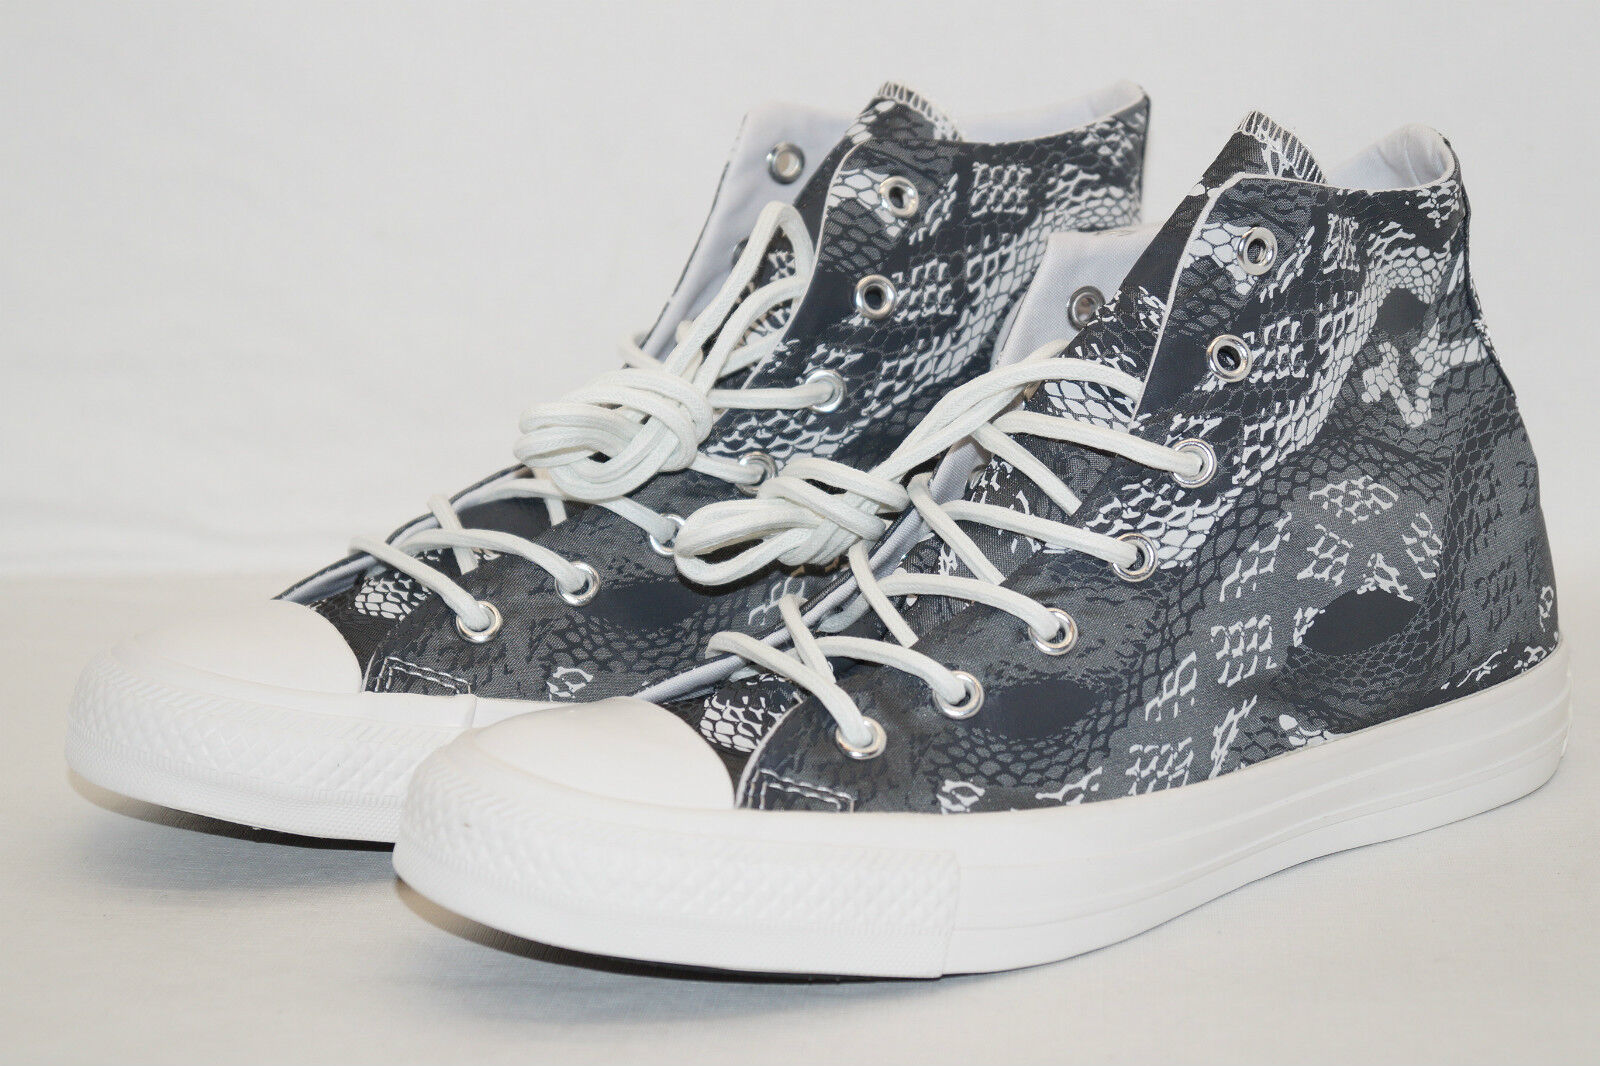 CONVERSE CHUCKS ALL STAR HIGH Gr.38 UK 5,5 REPTILE PRINT dunkelgrey weiss 547253